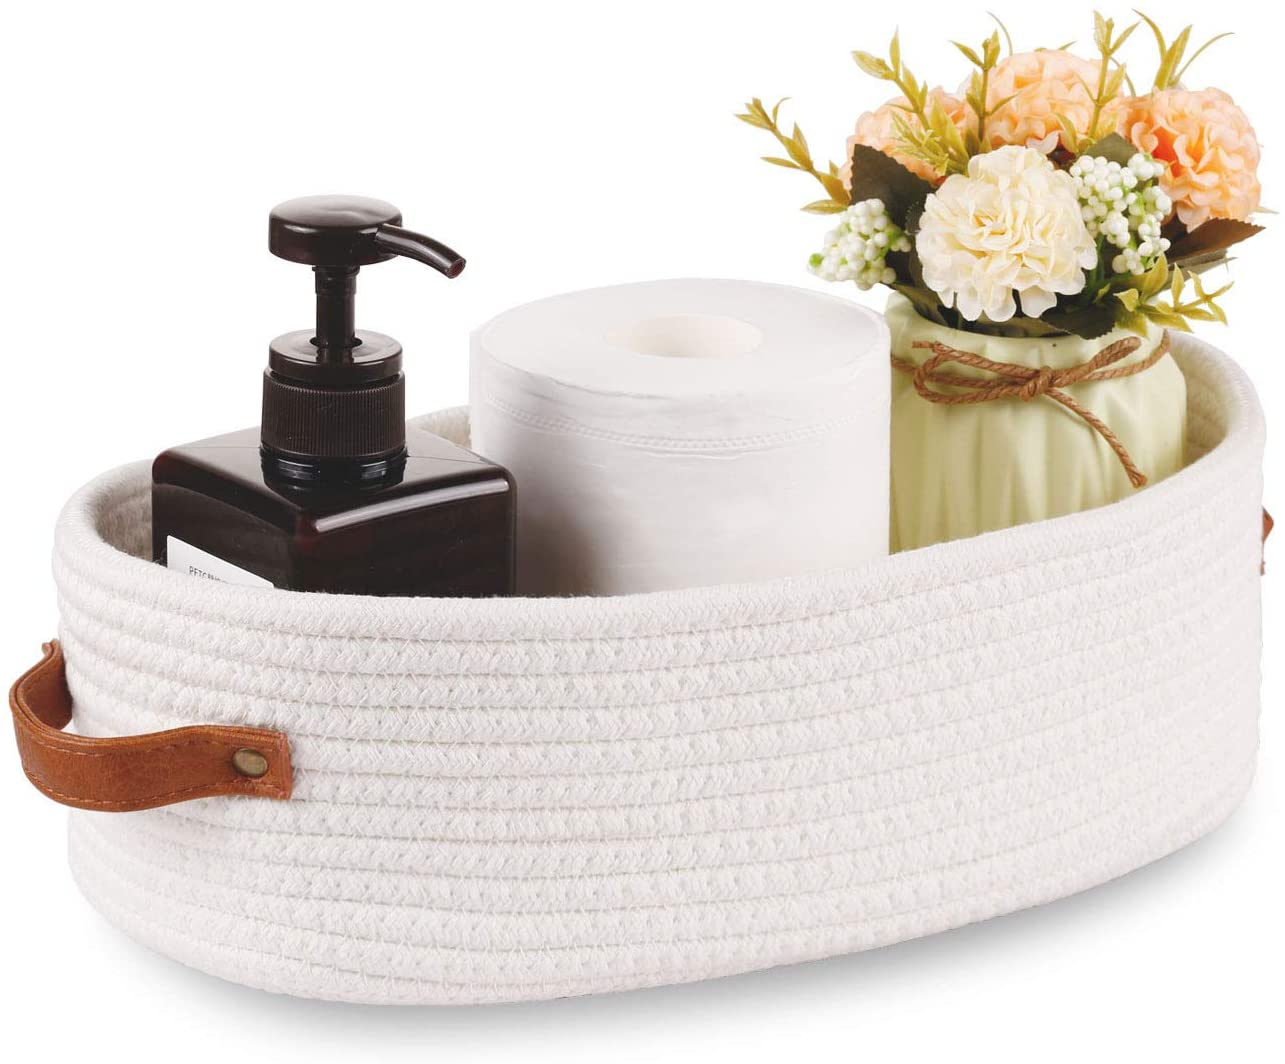 Oradrem Woven Storage Basket for Toilet Tank Top,Farmhouse Home Decor Organizing Baskets for Bathroom,Table and Counter 13